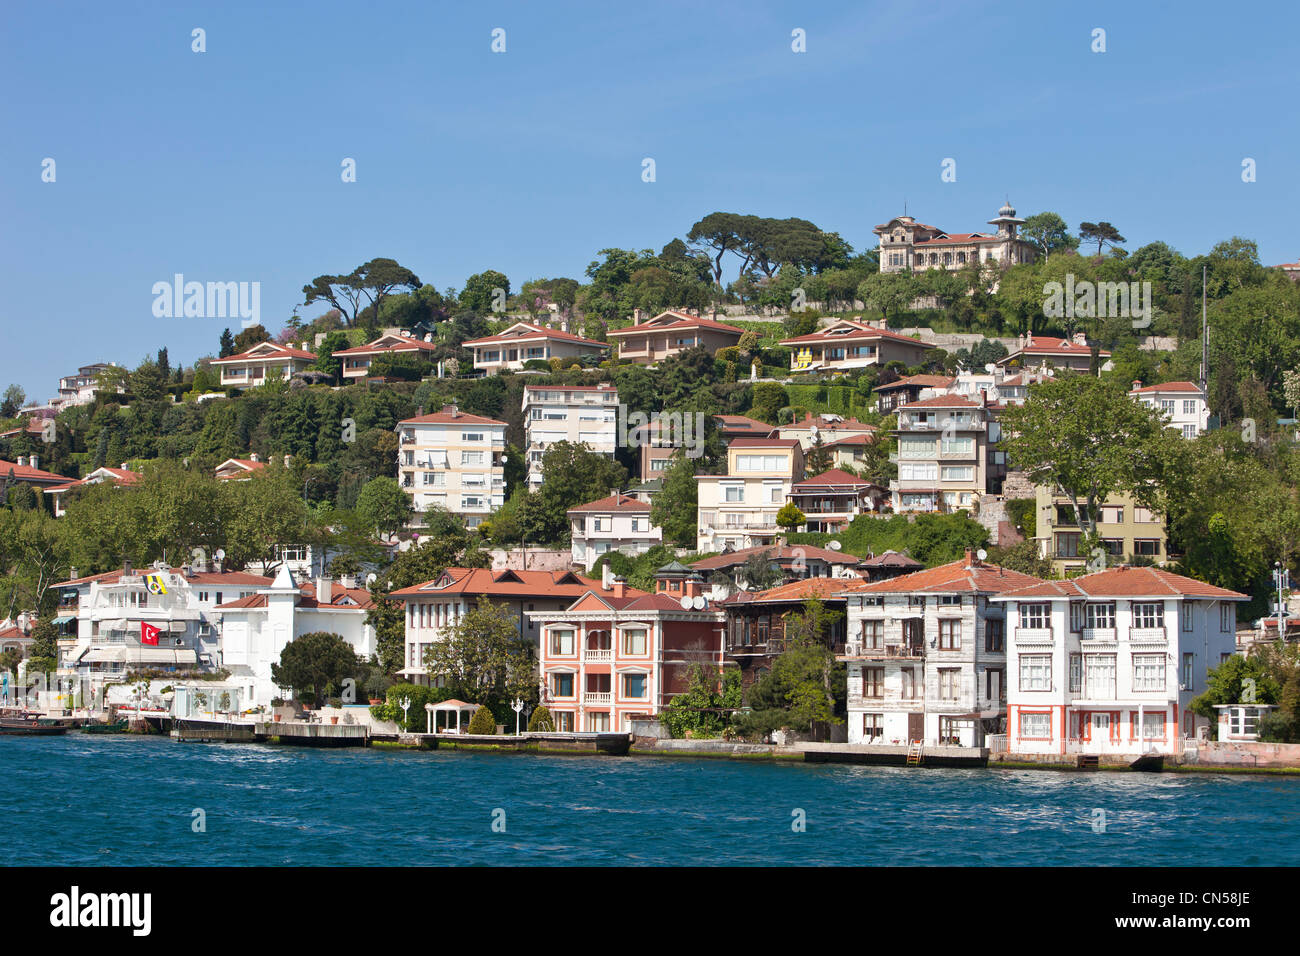 urkey, Istanbul, residential area on the eastern side of the Bosphorus - Stock Image